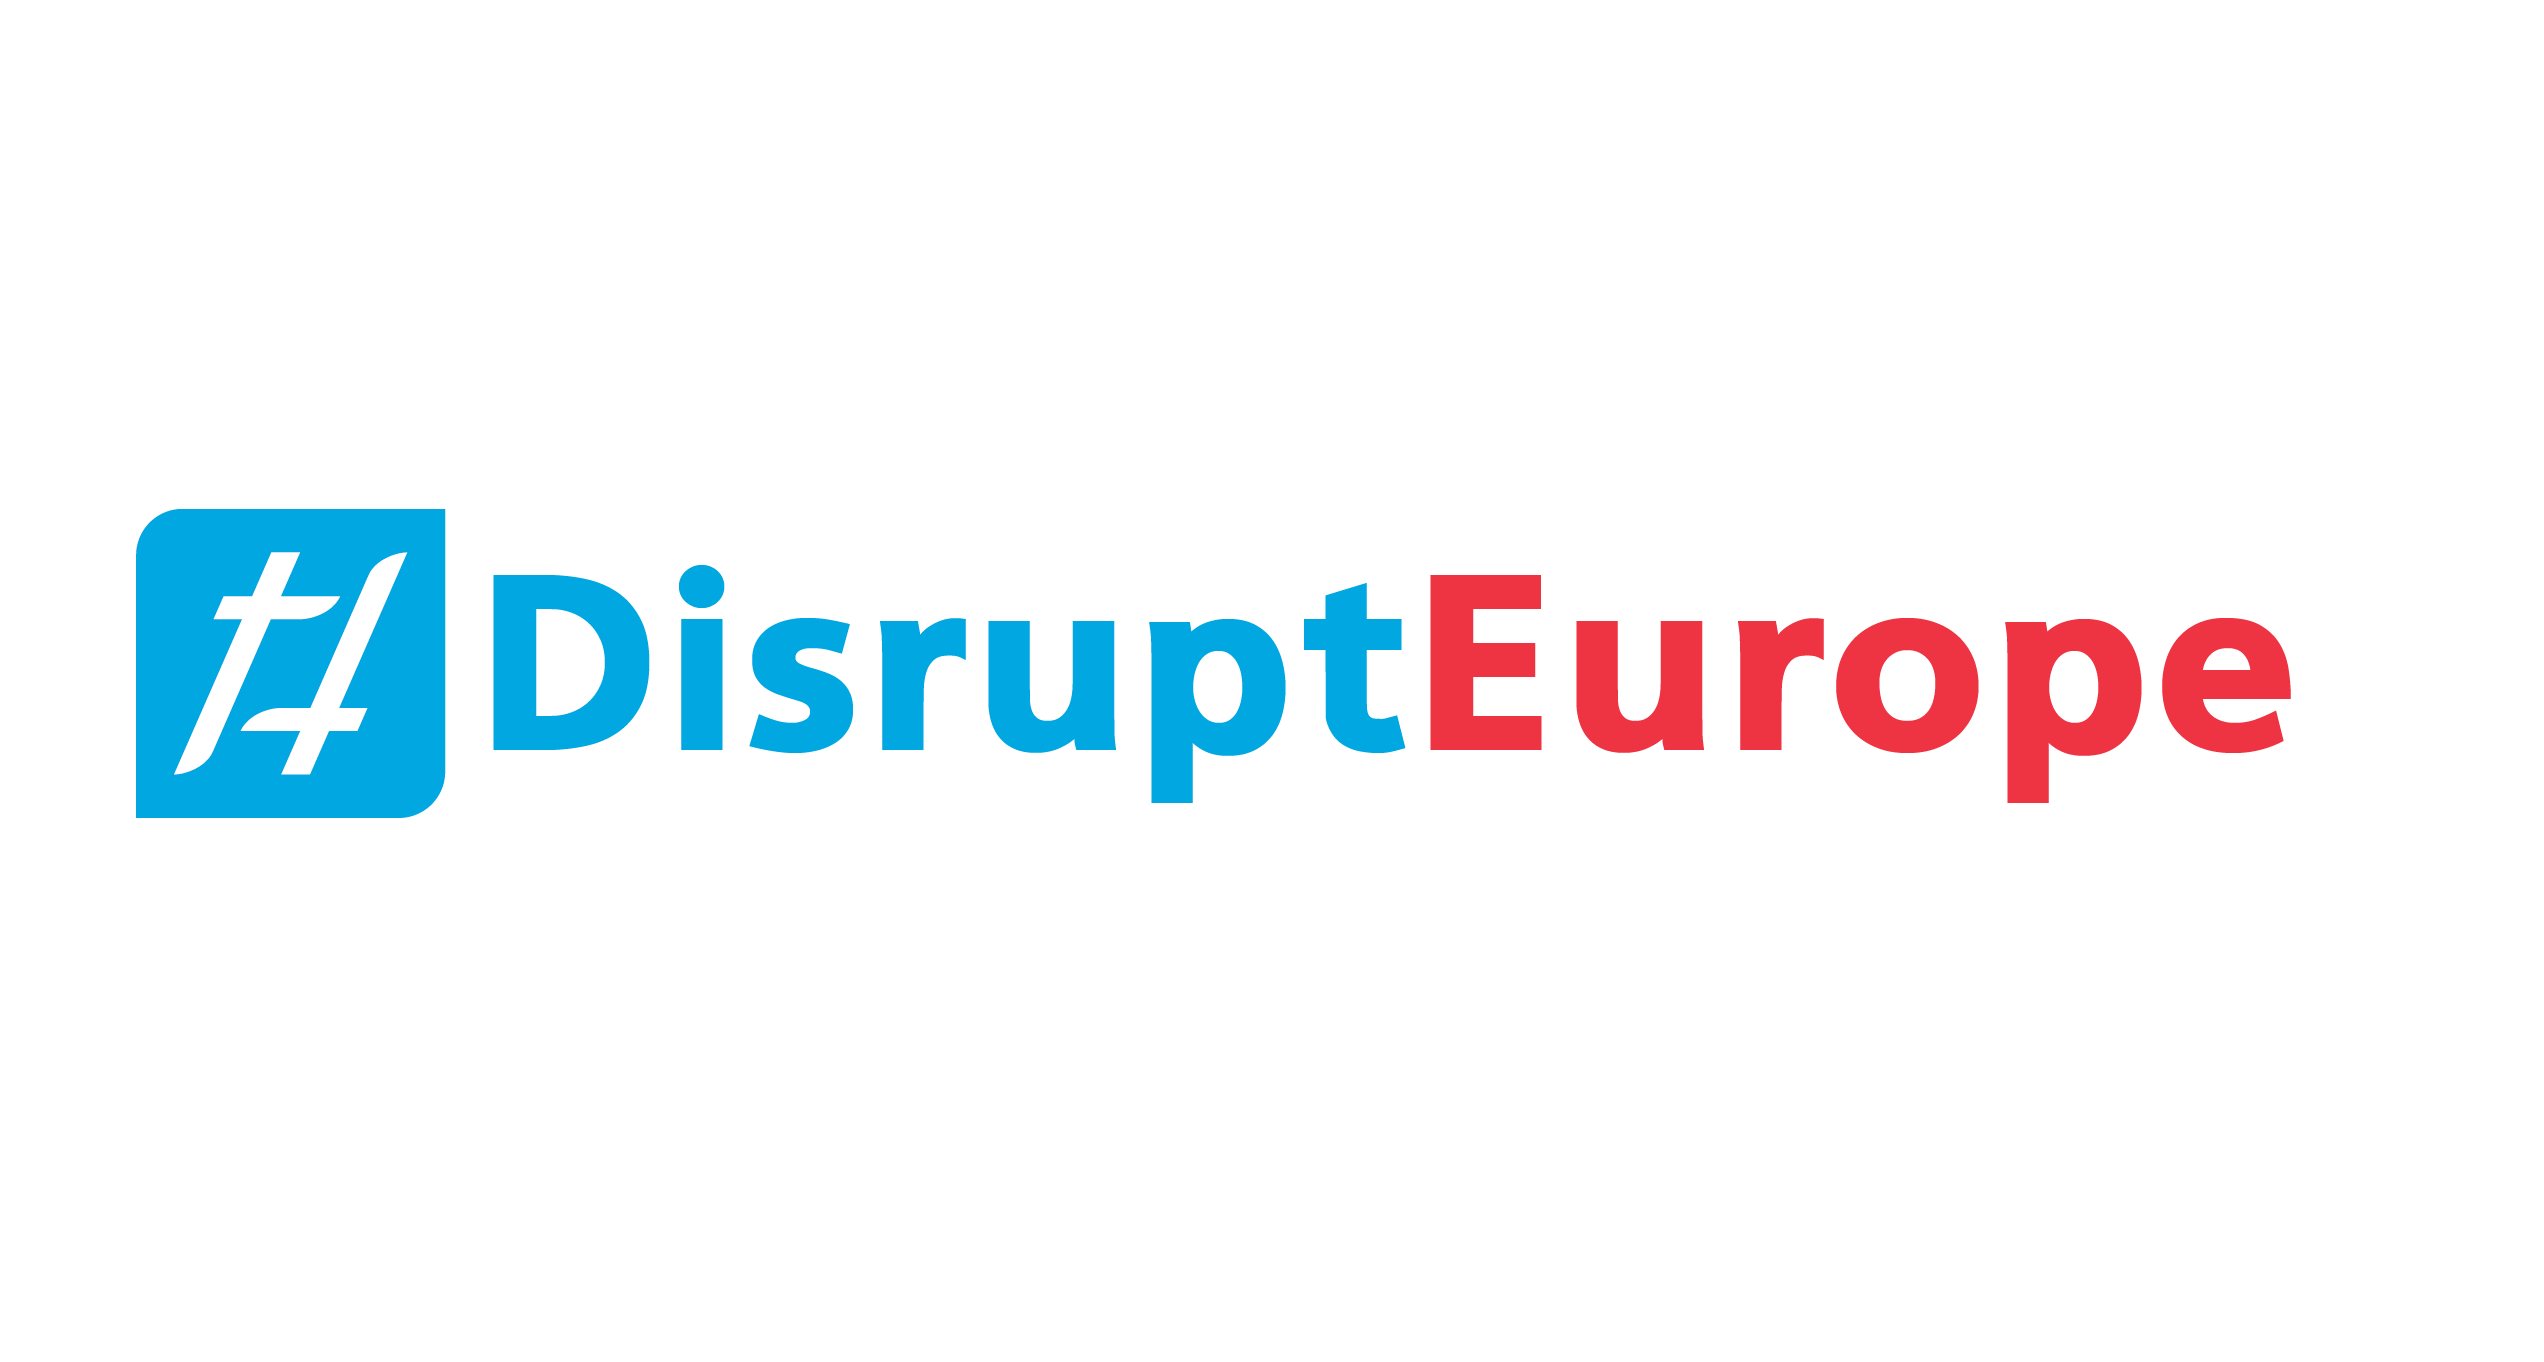 Disrupteurope - media supporters